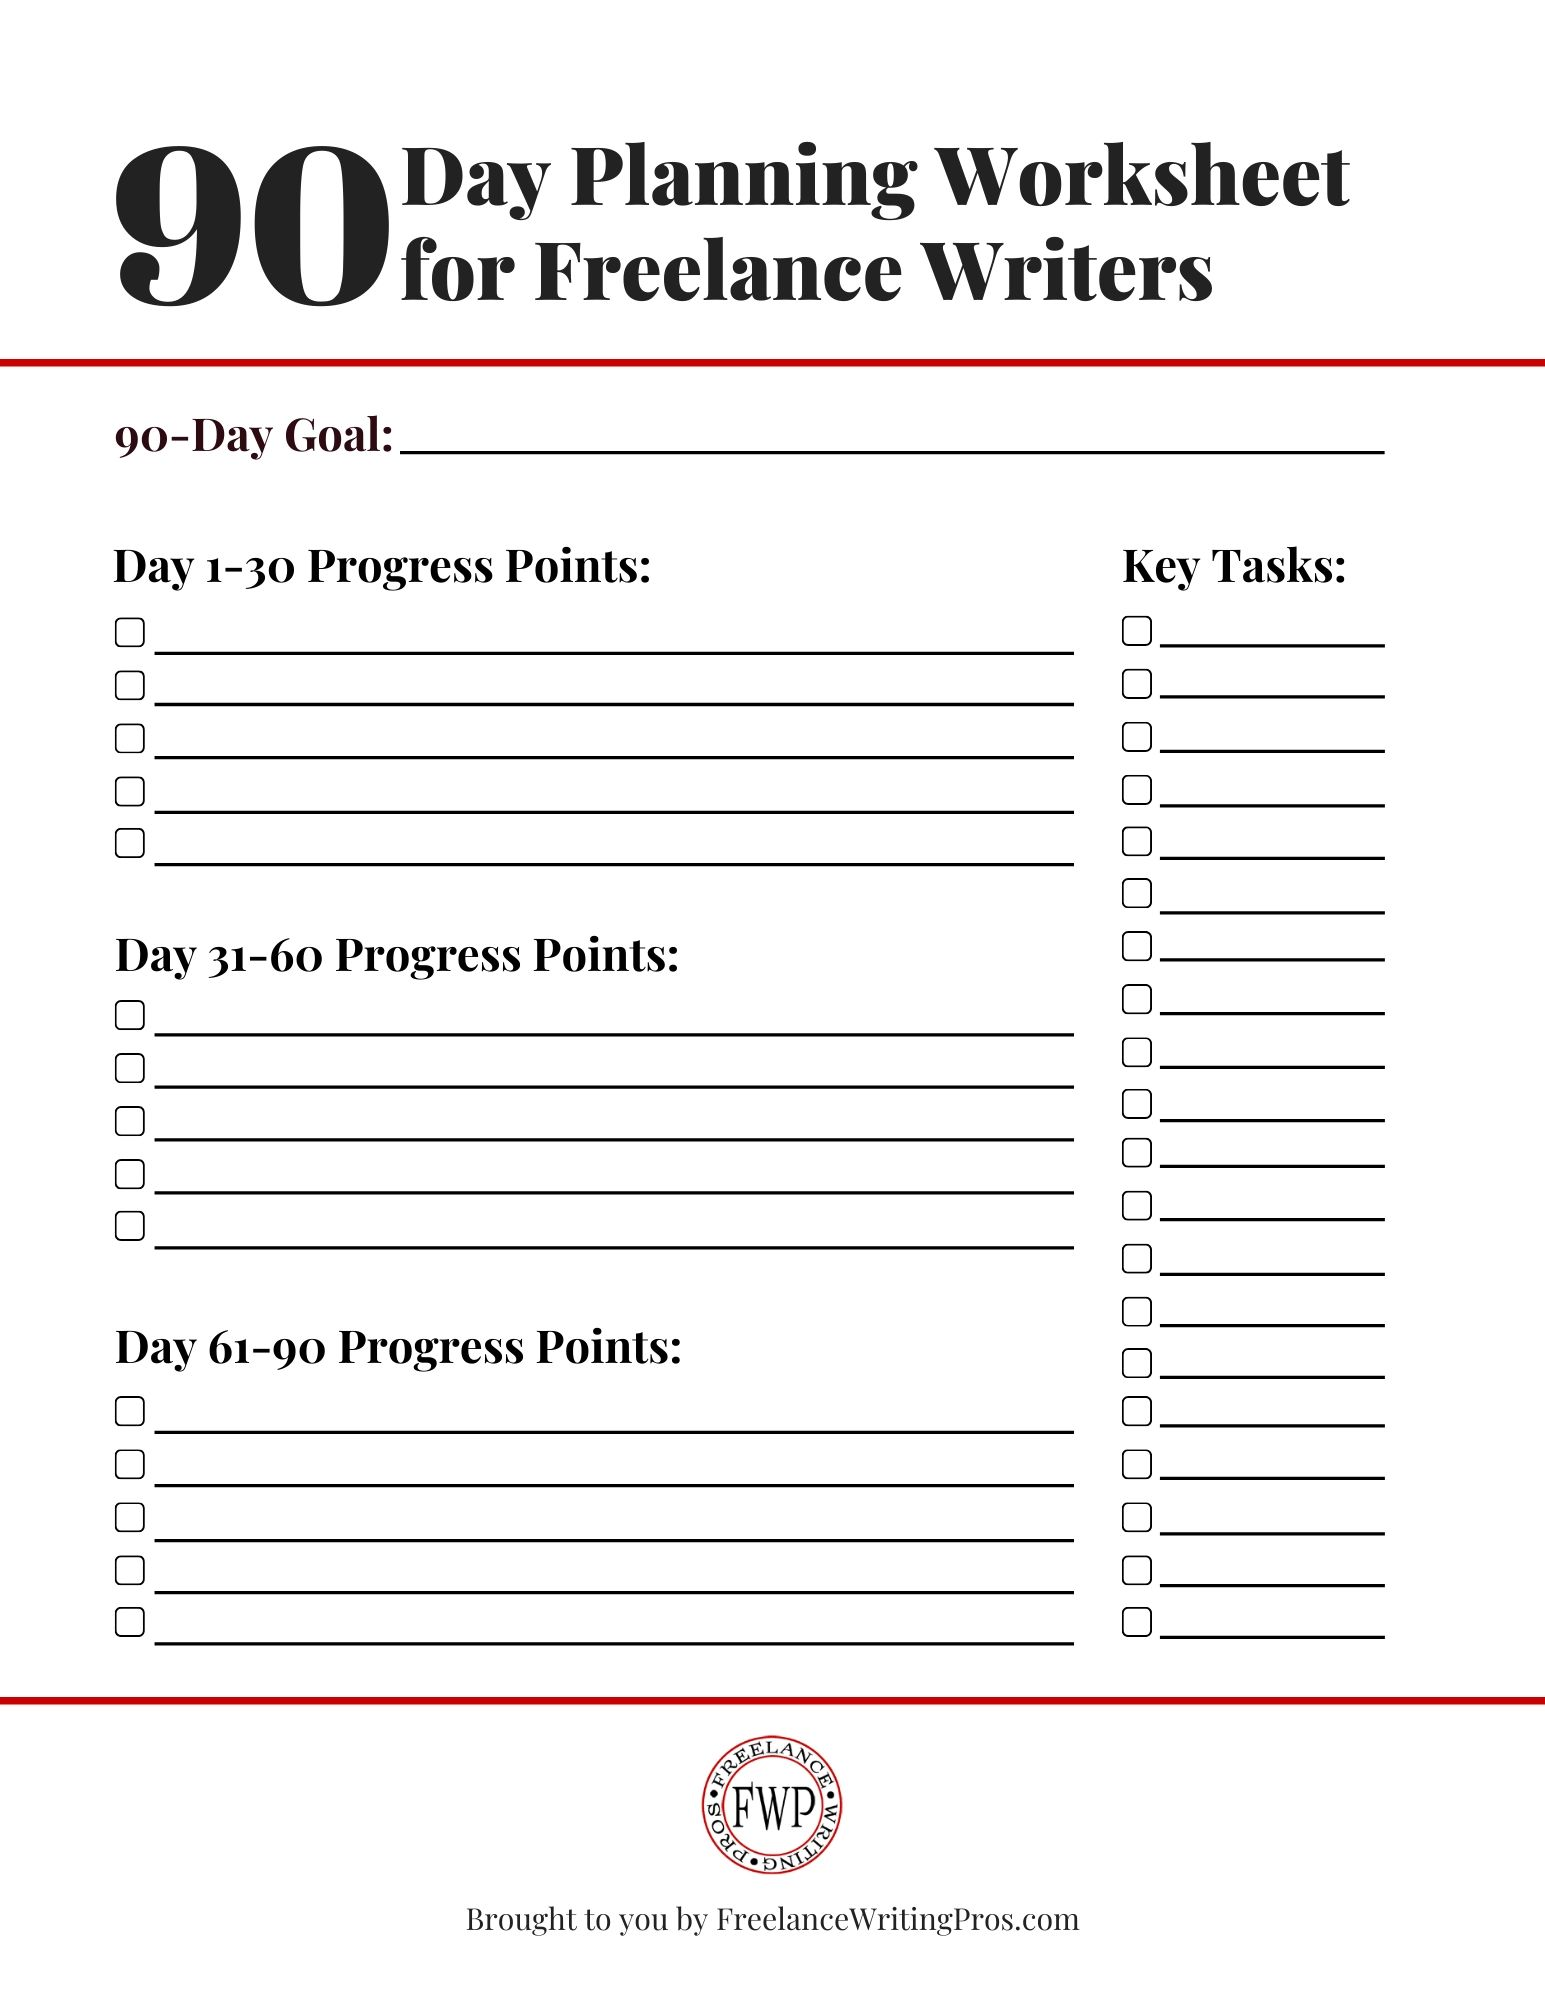 90-Day Planning Worksheet - FreelanceWritingPros.com